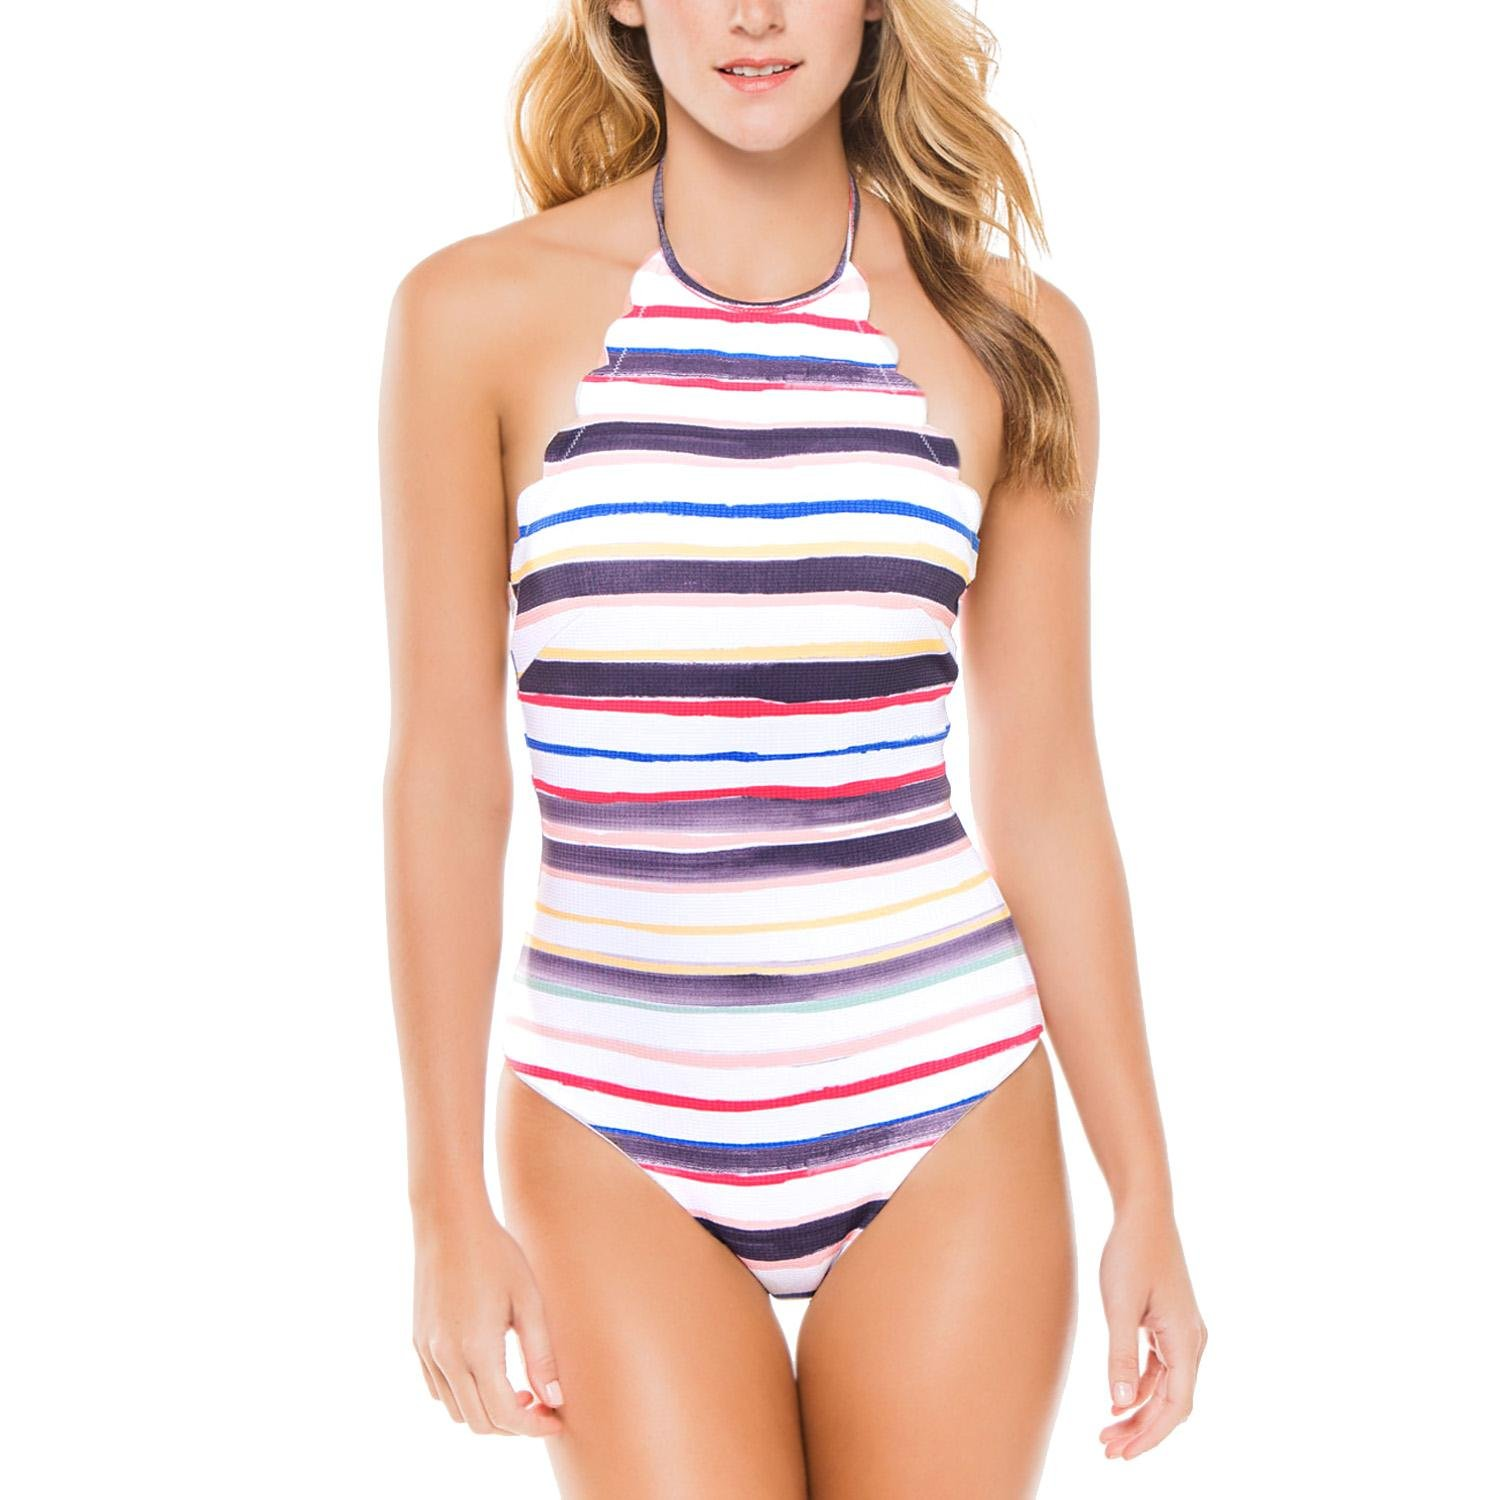 5b491274fb77e Yolev Monokini One Piece Swimsuits for Women, Maillot Bathing Suit with  Backless, Crisscross and Scalloped